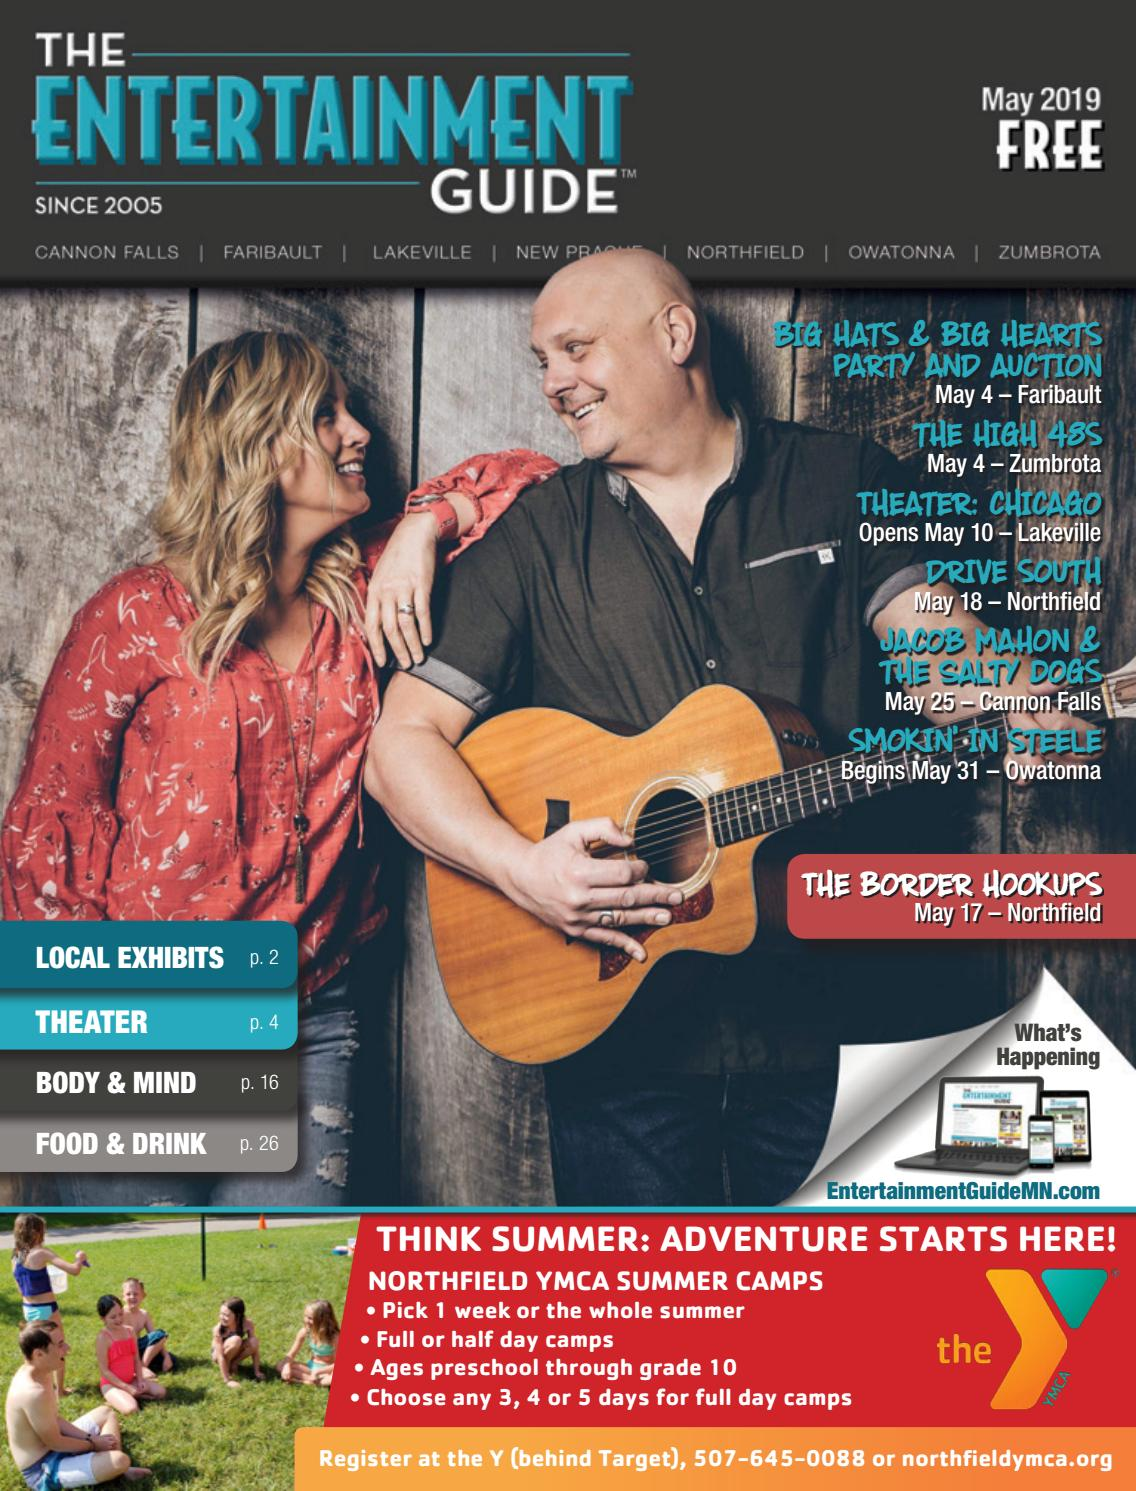 7fdda9a819b May 2019 Entertainment Guide by The Entertainment Guide - issuu